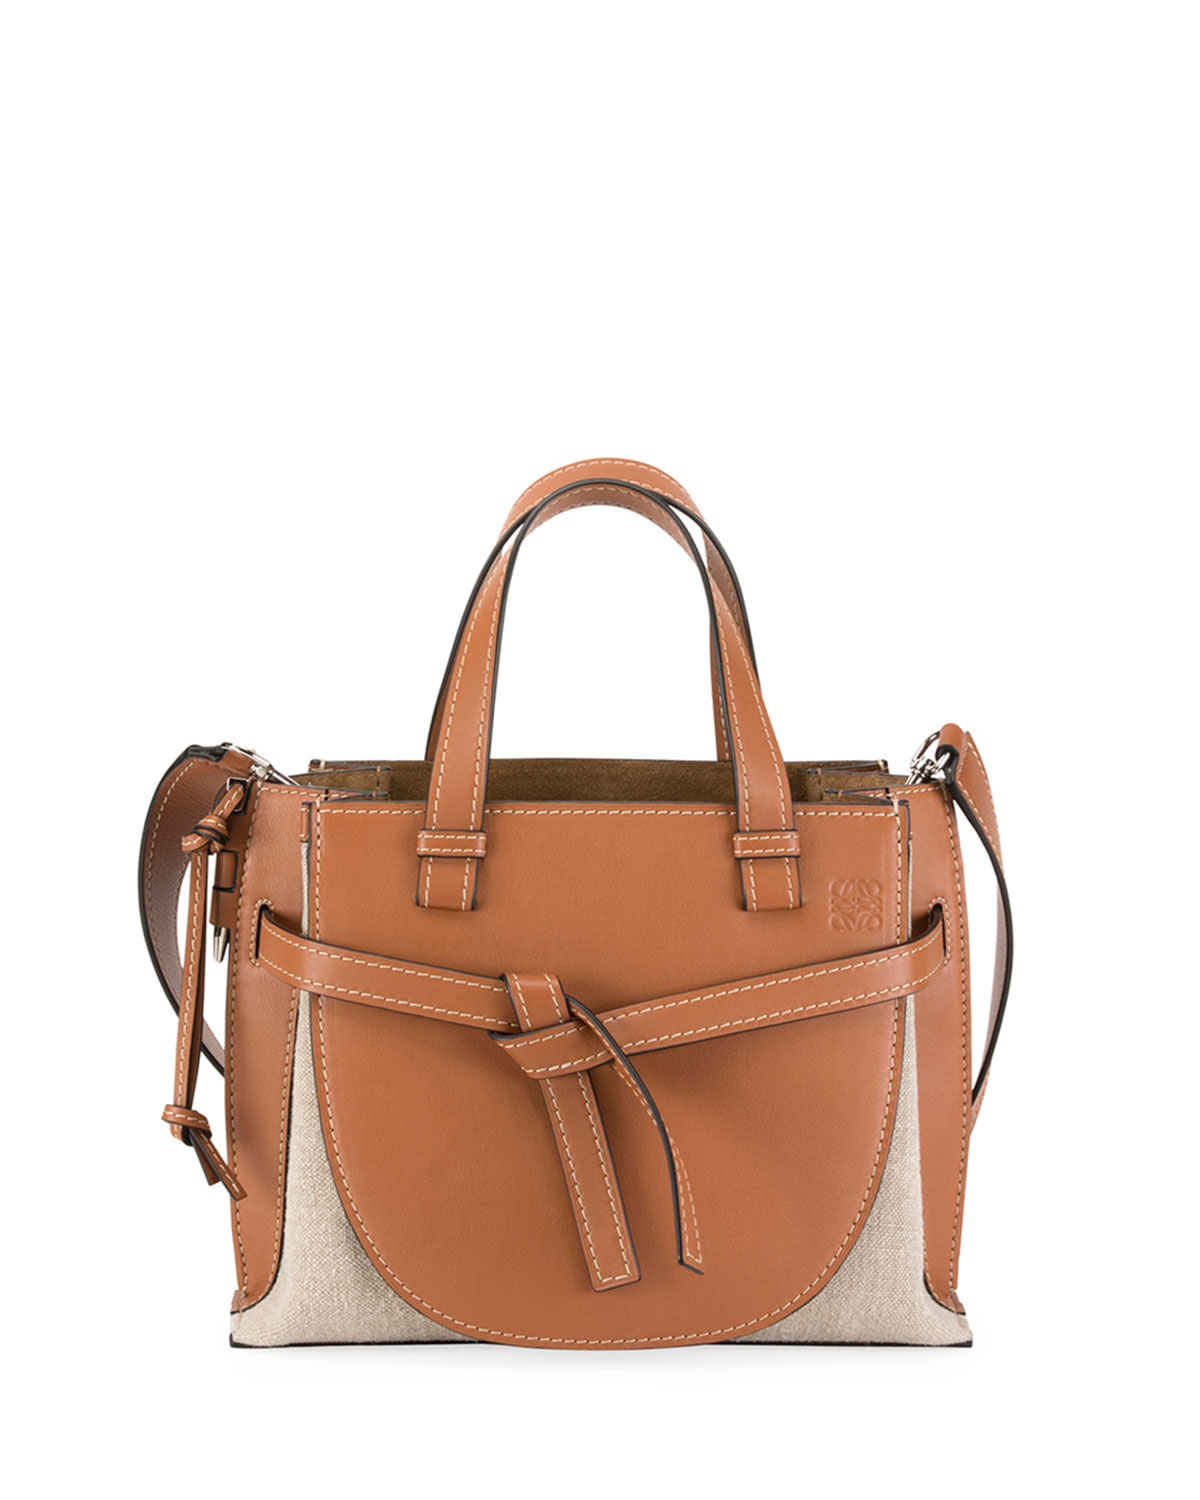 a166bf012196a Loewe Gate Small Leather Top-Handle Tote Bag | Neiman Marcus